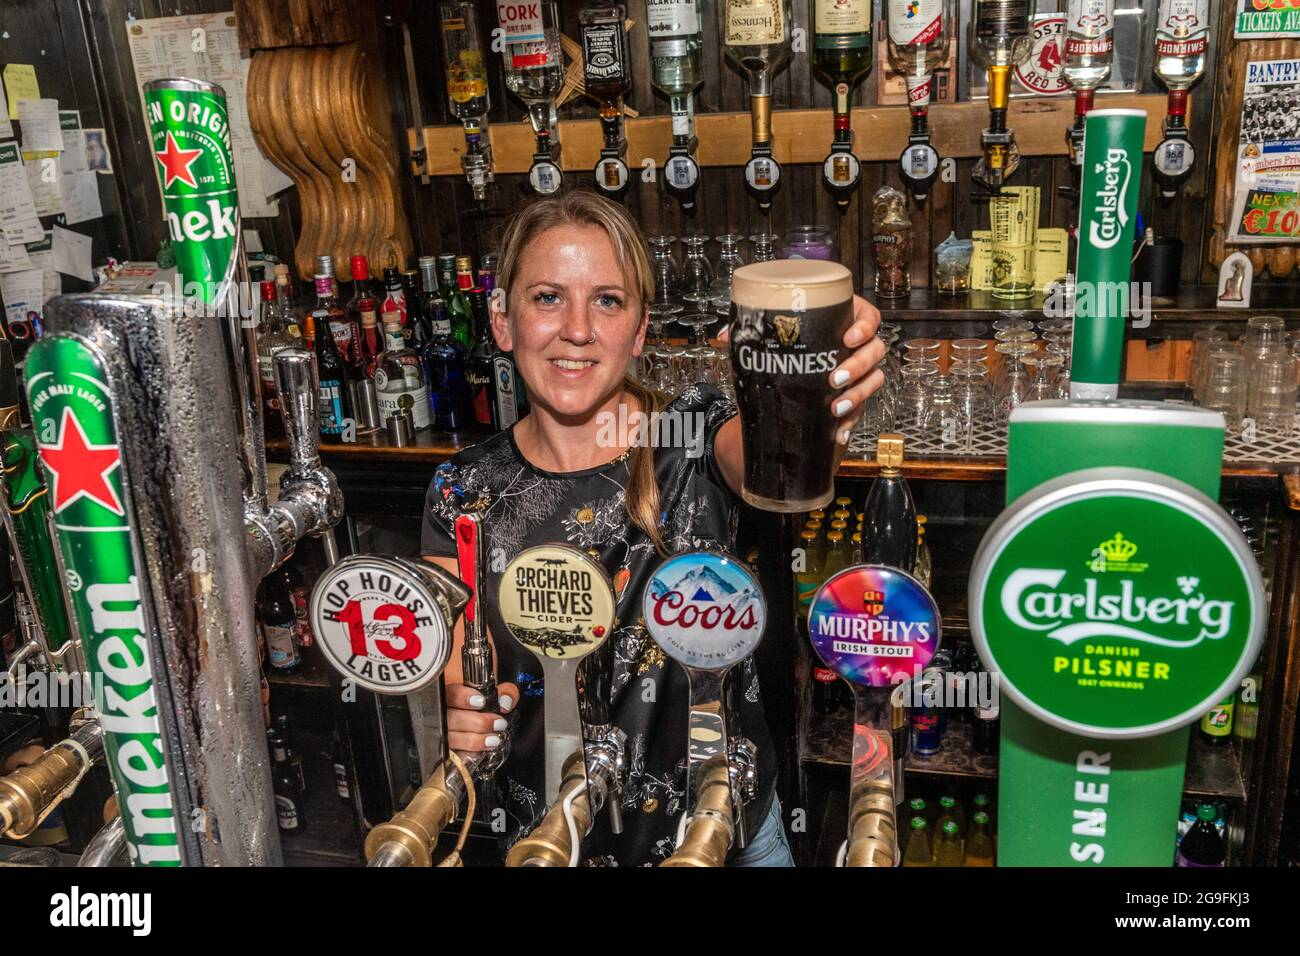 bantry-west-cork-ireland-26th-july-2021-today-the-so-called-wet-pubs-reopened-for-the-first-time-since-the-start-of-the-pandemic-pictured-is-boston-bar-staff-member-helen-martin-credit-ag-newsalamy-live-news-2G9FKJ3.jpg